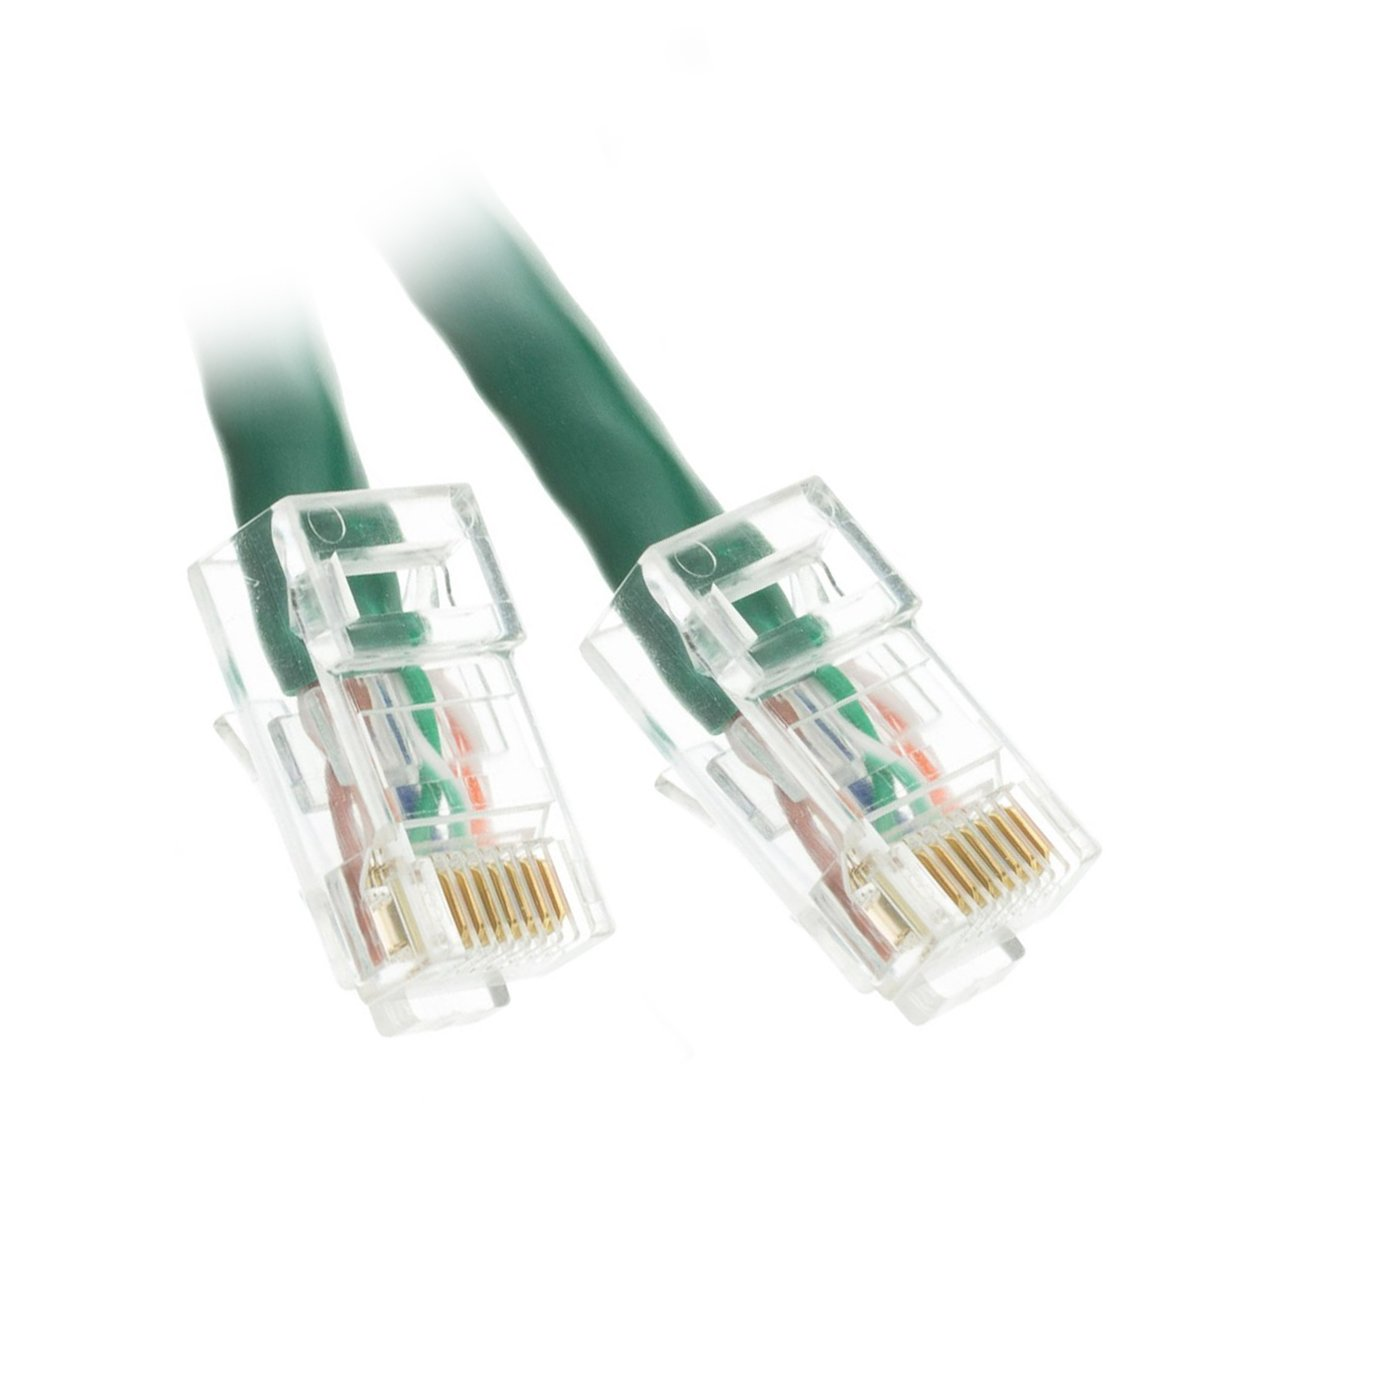 Acl 25 Feet Cat5e Rj45 Bootless Ethernet Patch Cable Black 5 Foot Part Number 10x6 Green 2 Pack Computers Accessories